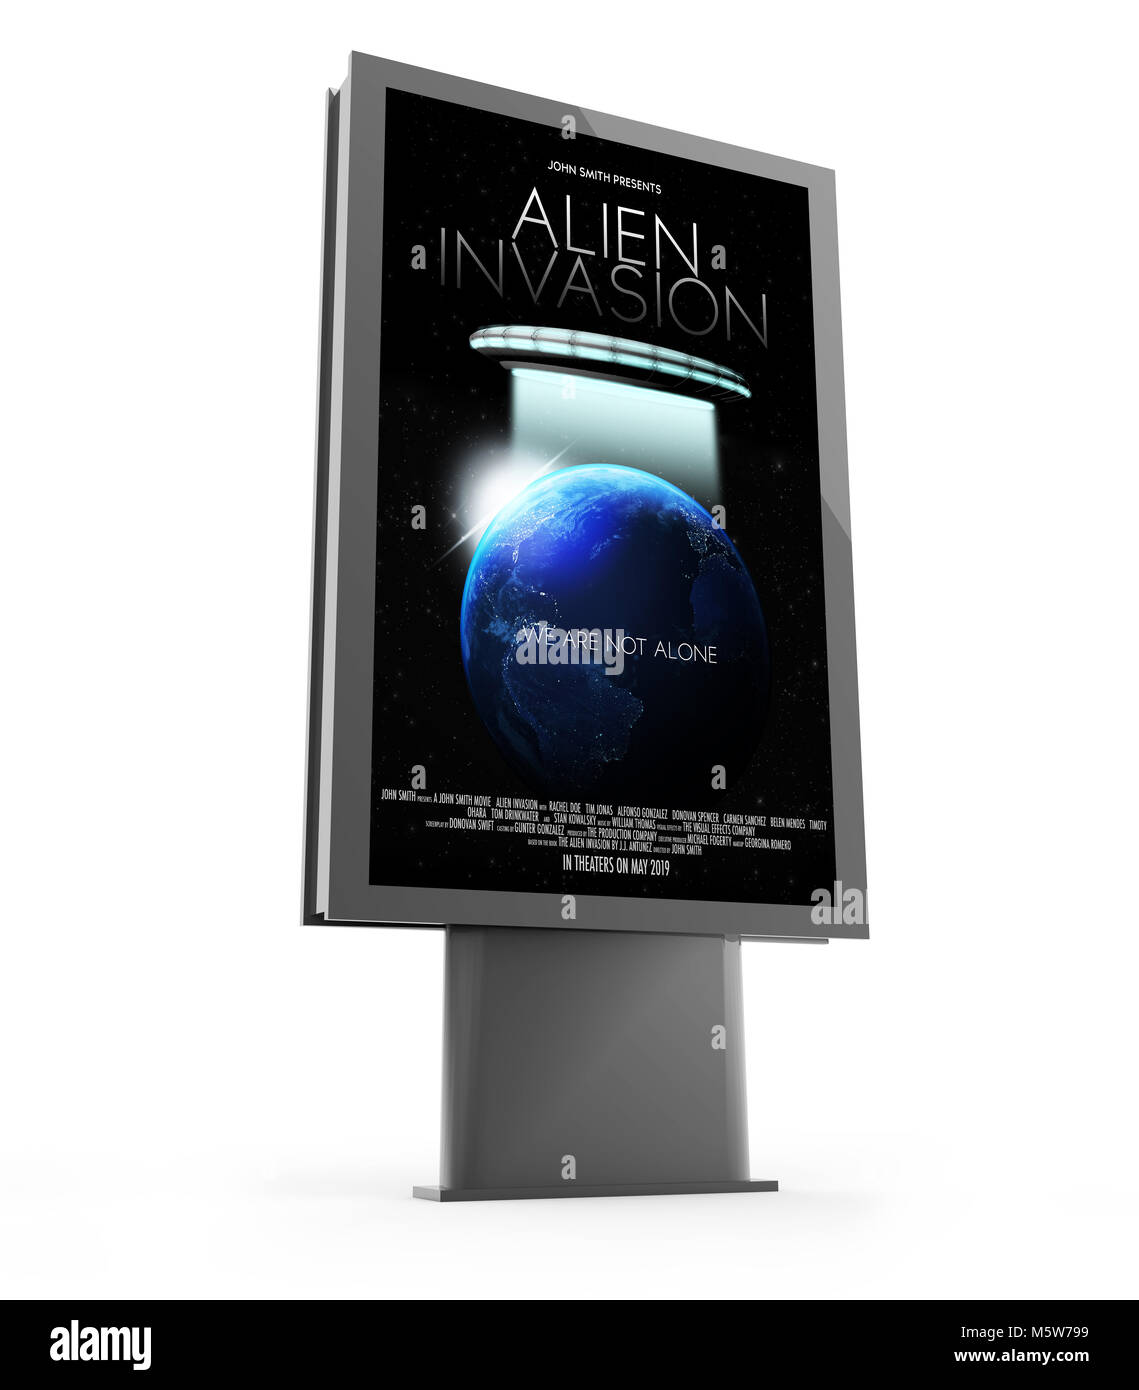 3d rendering of a movie poster street marketing billboard - Stock Image